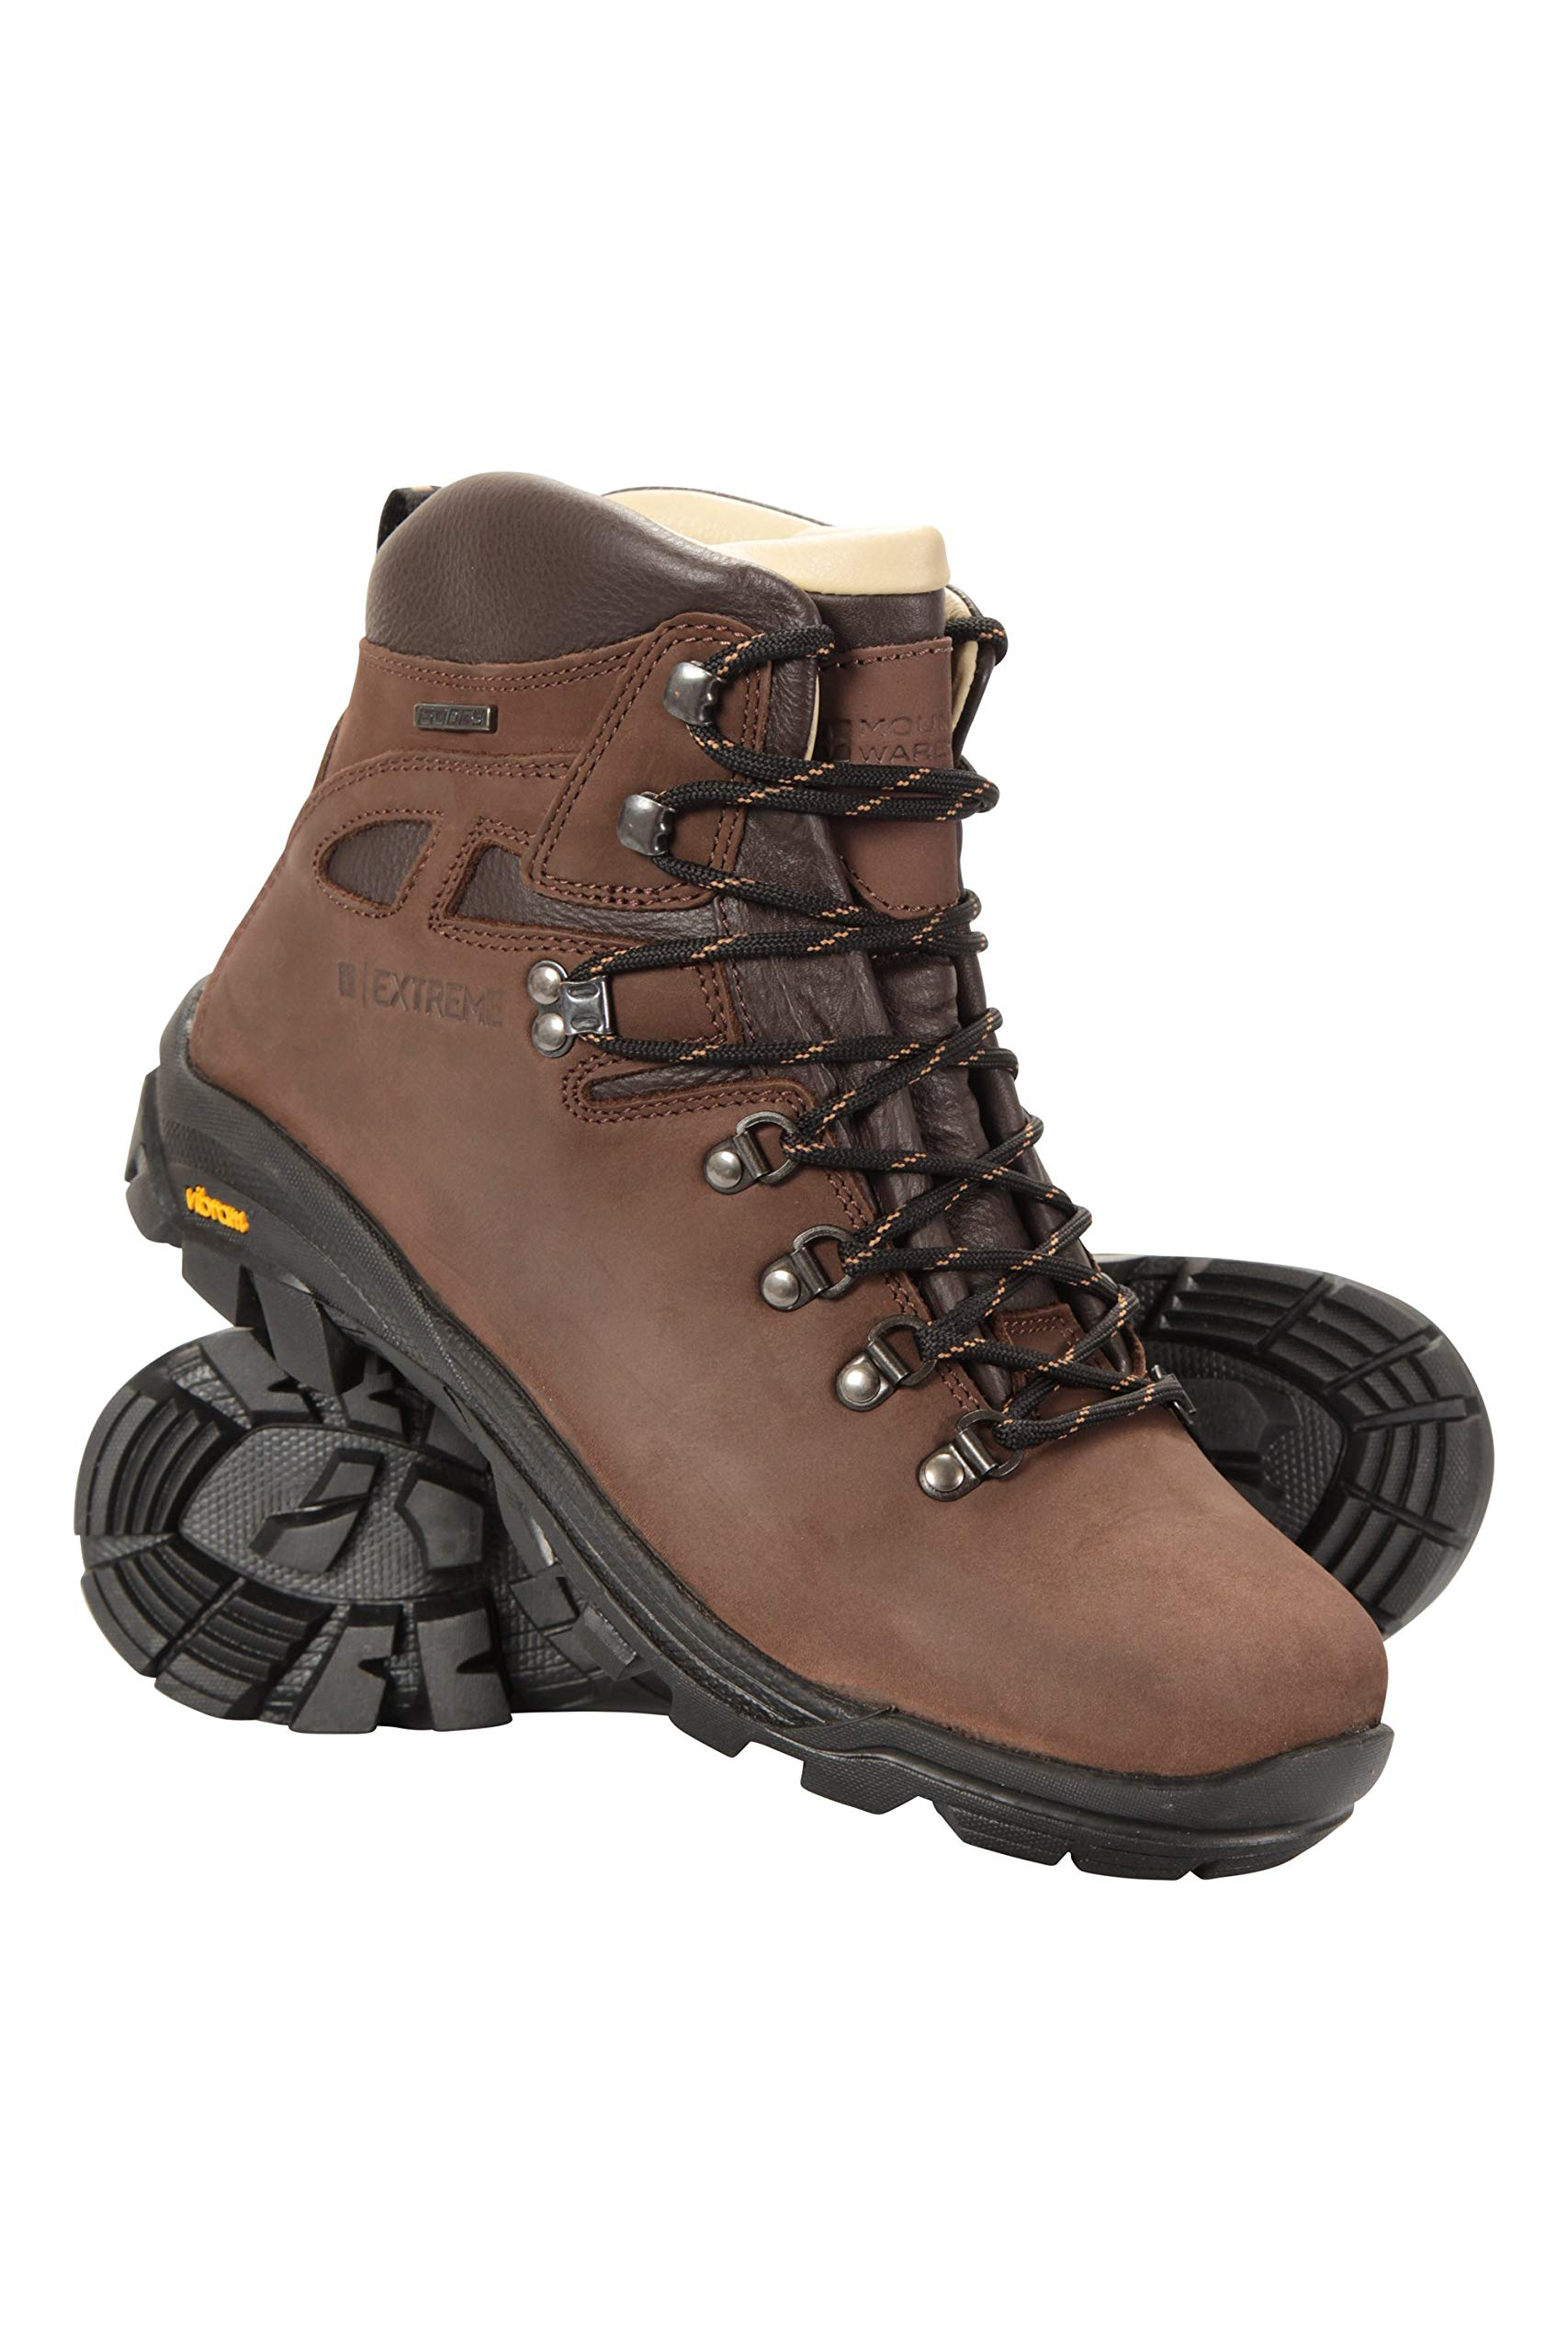 Excalibur Mens Waterproof Boots Breathable Walking Shoes Leather Upper Vibram Sole Hiking Boots Antibacterial For Travelling Walking Buy Online In Egypt At Desertcart Com Eg Productid 61470658